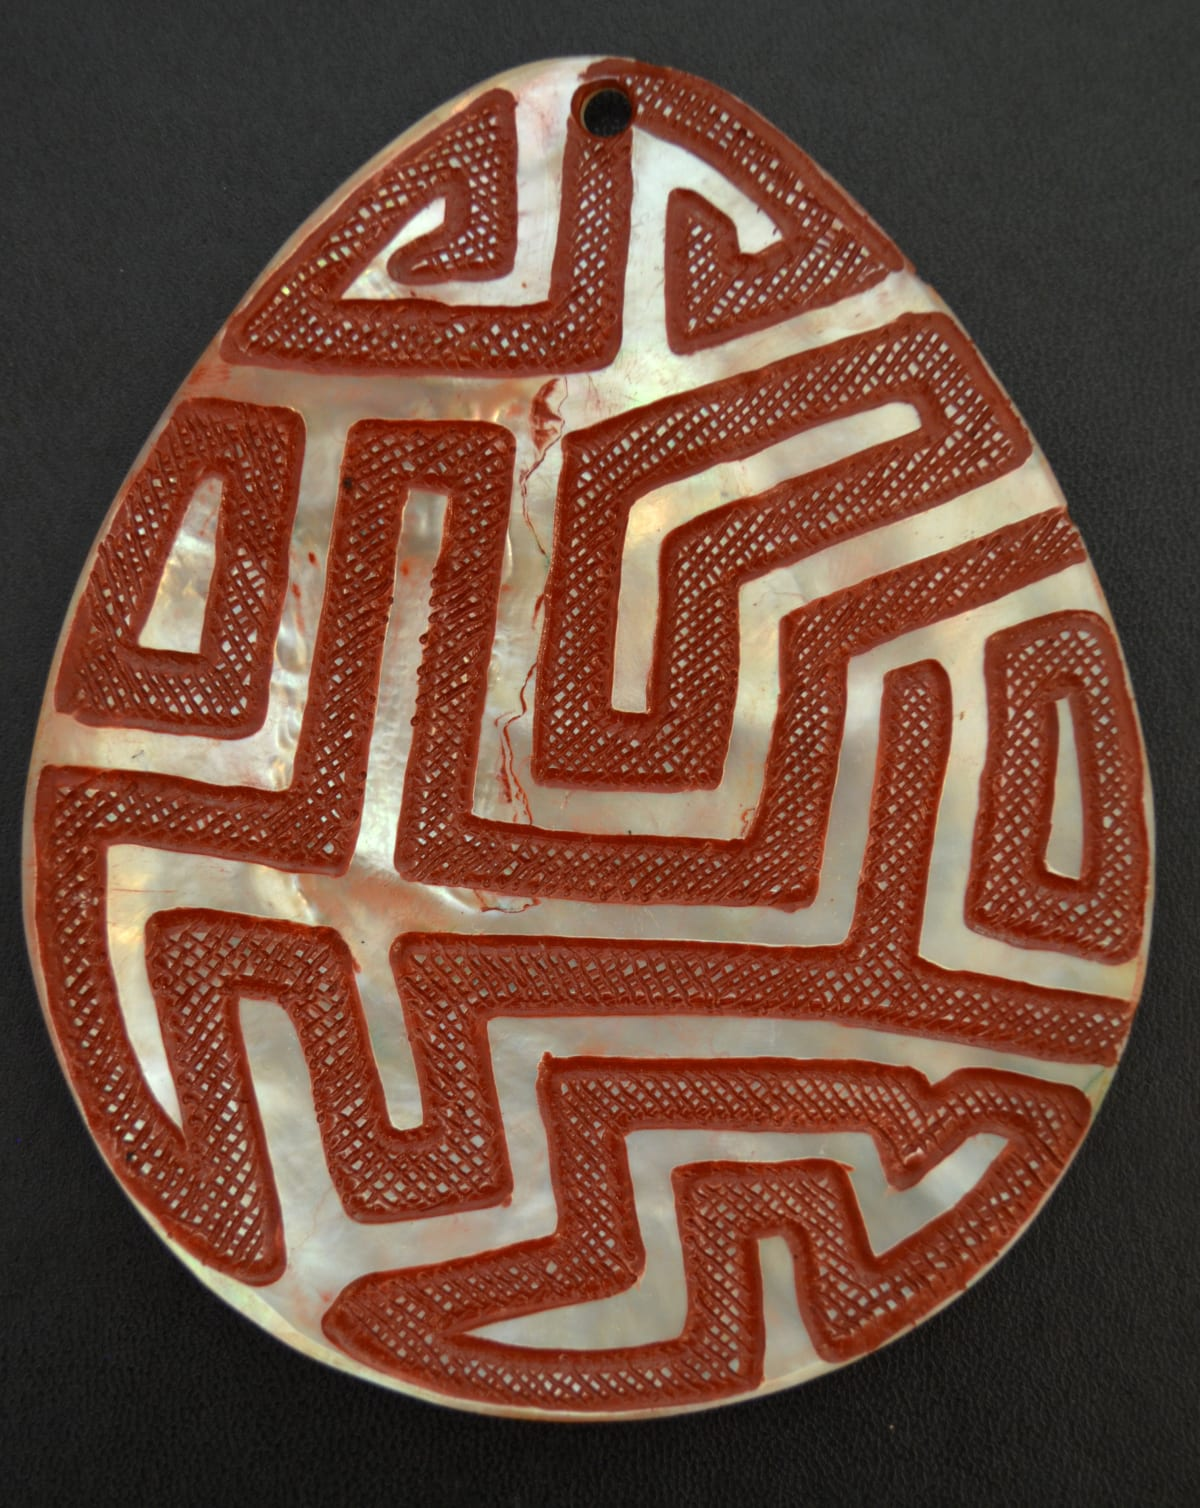 Sebastian Arrow Untitled carved pearl shell & red ochre 13.5 x 11 cm